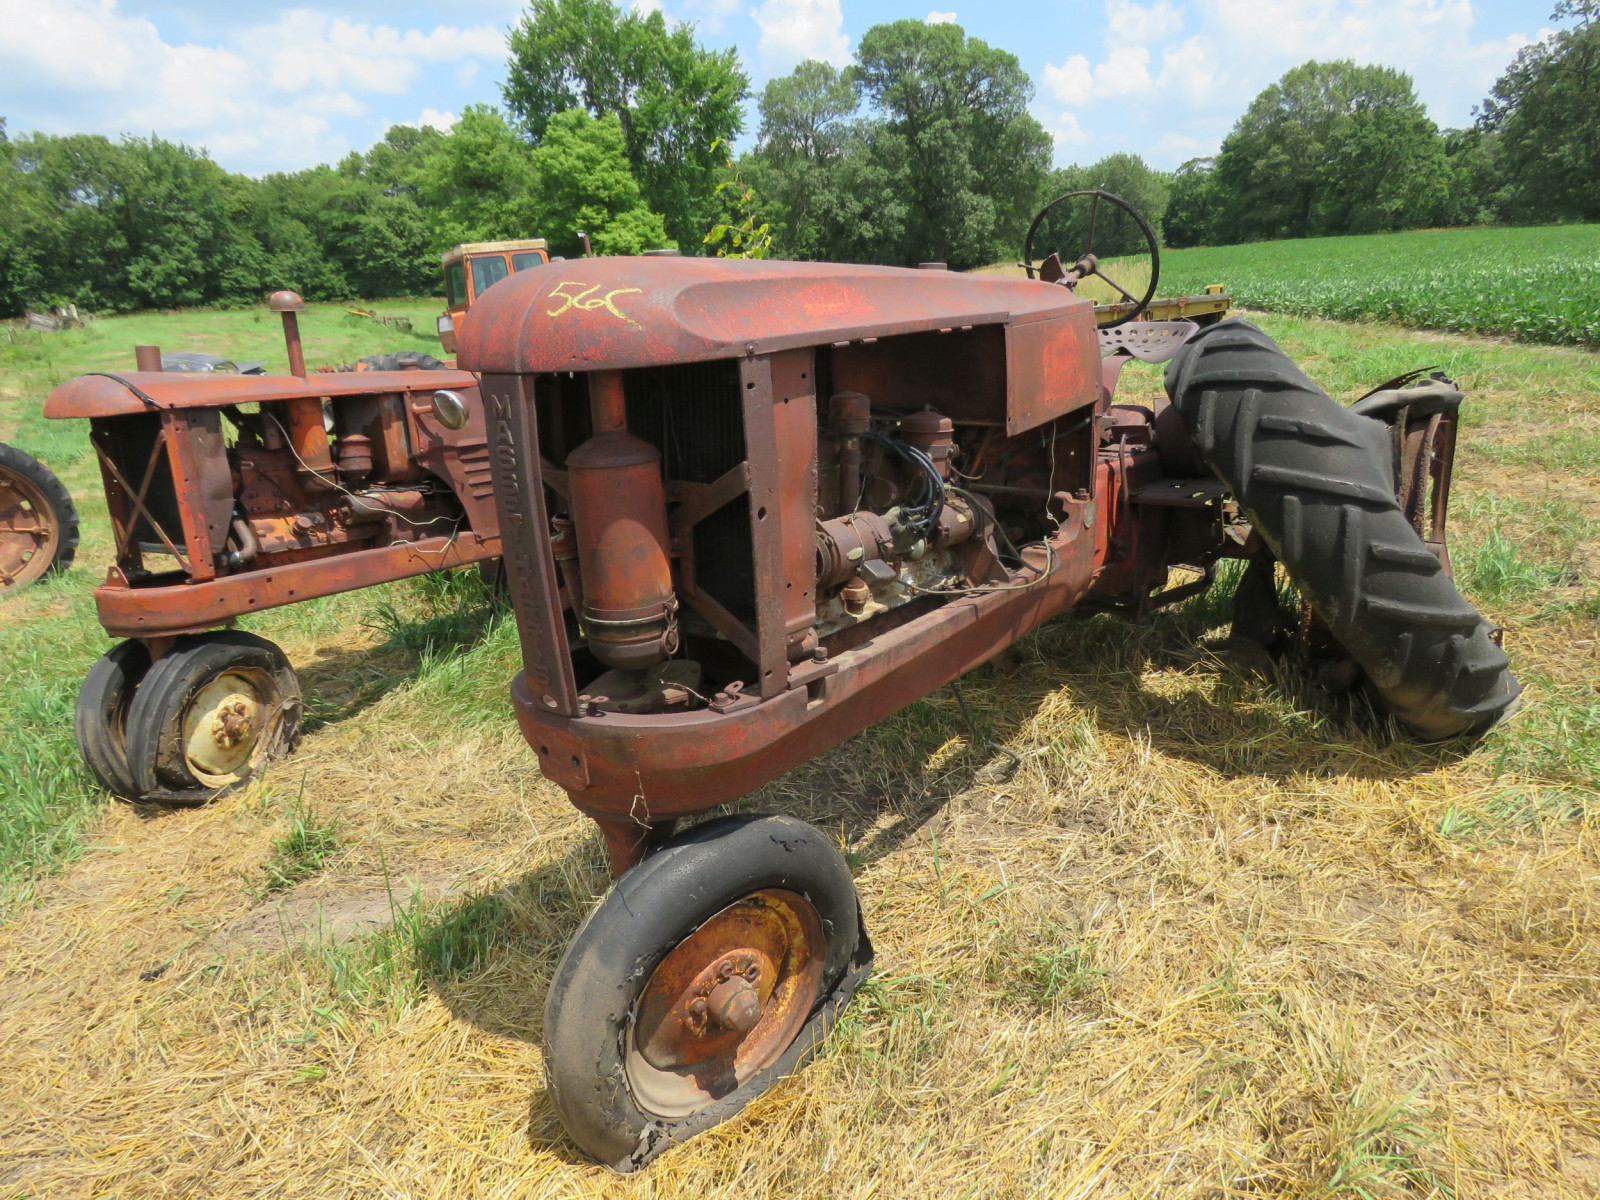 Massey Harris Tractor for Project or Parts - Image 6